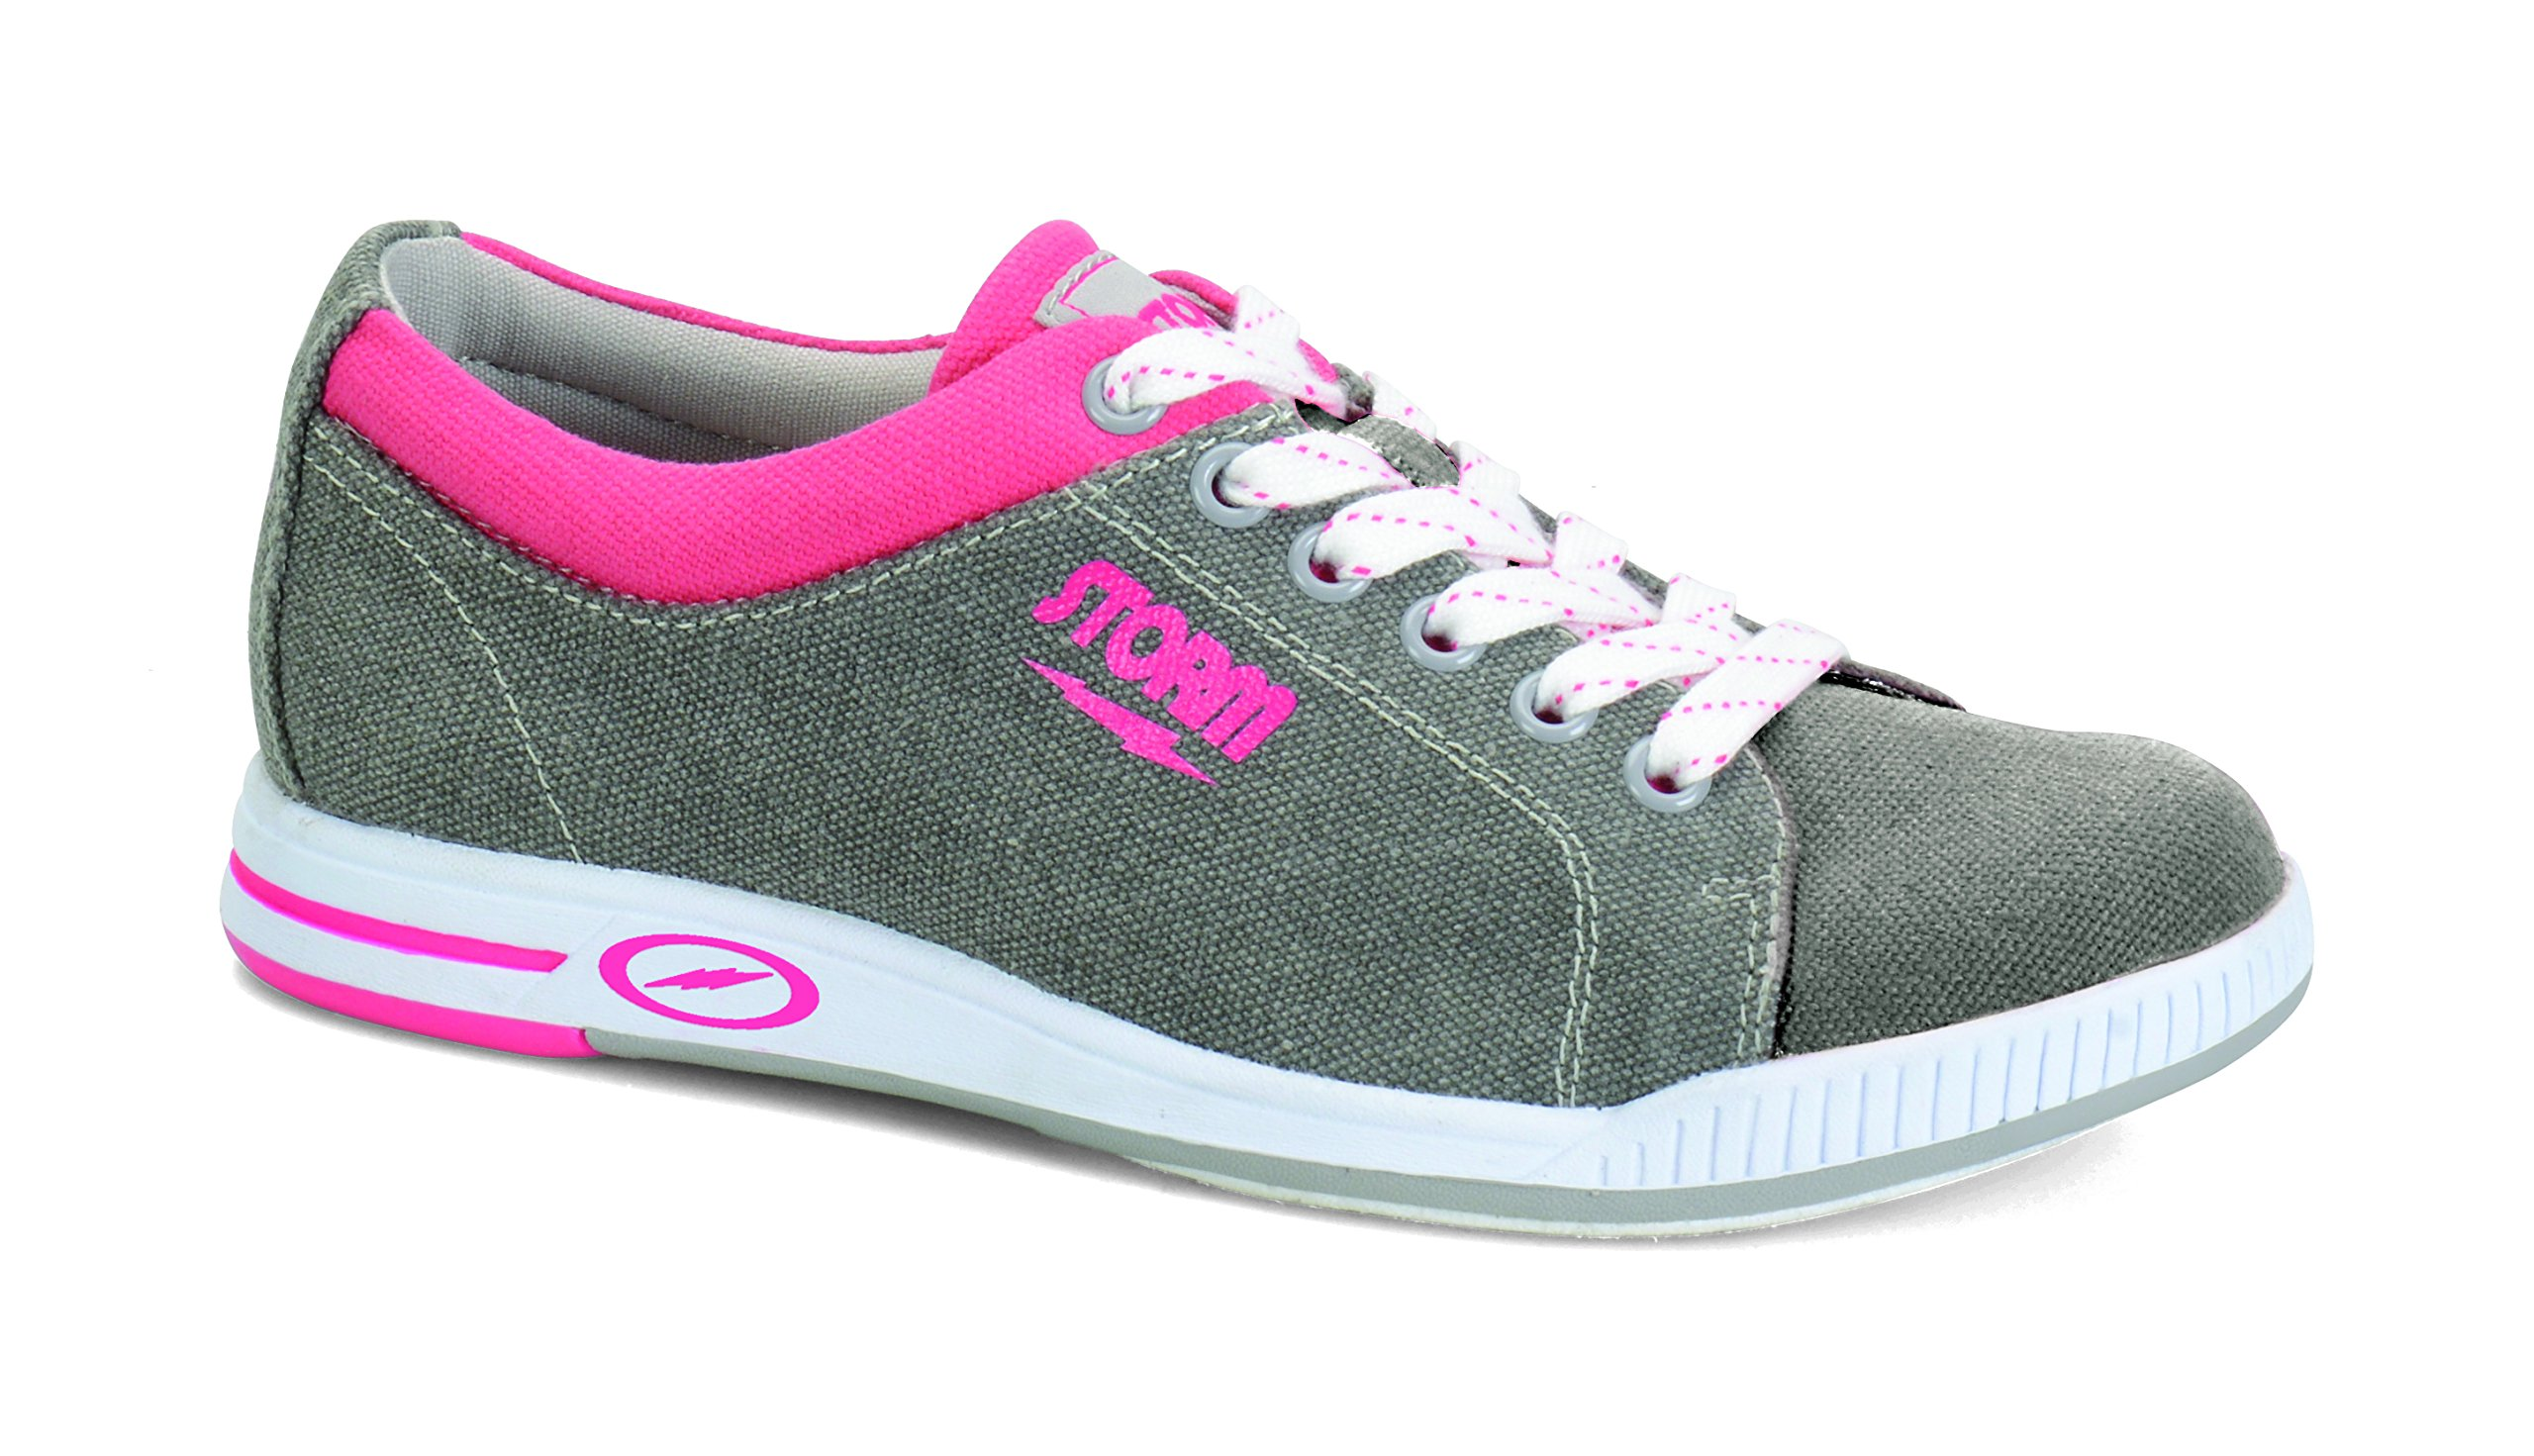 Storm Meadow Bowling Shoes, Grey/Pink, 8.0 by Storm